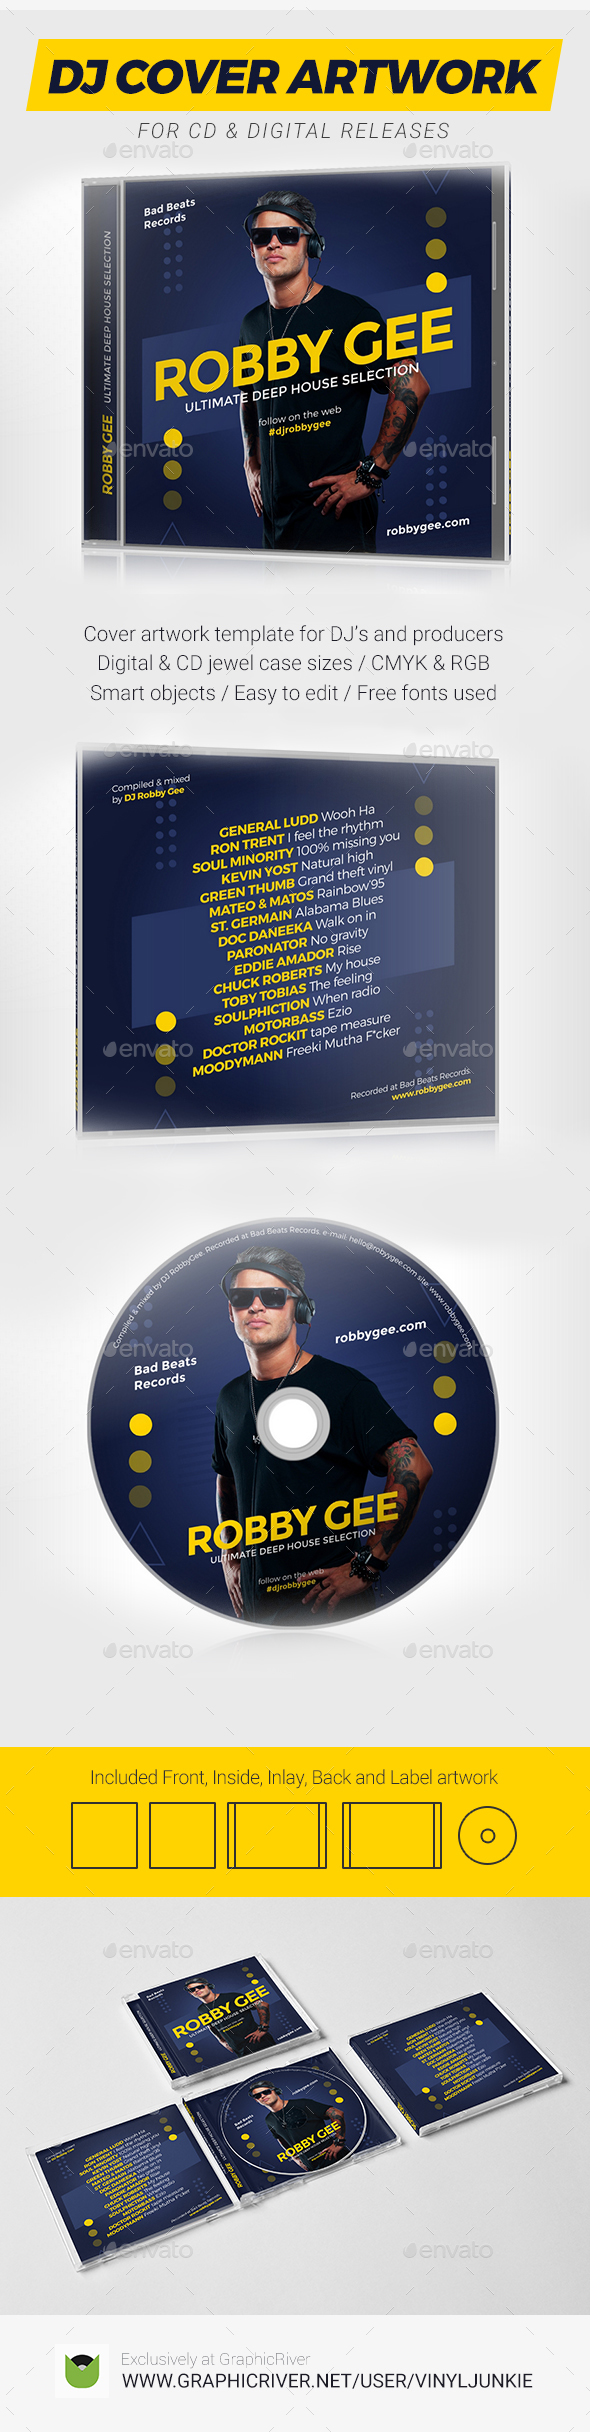 ProDJ   DJ Mixtape CD Cover Artwork PSD Template   CD U0026 DVD Artwork Print  Templates